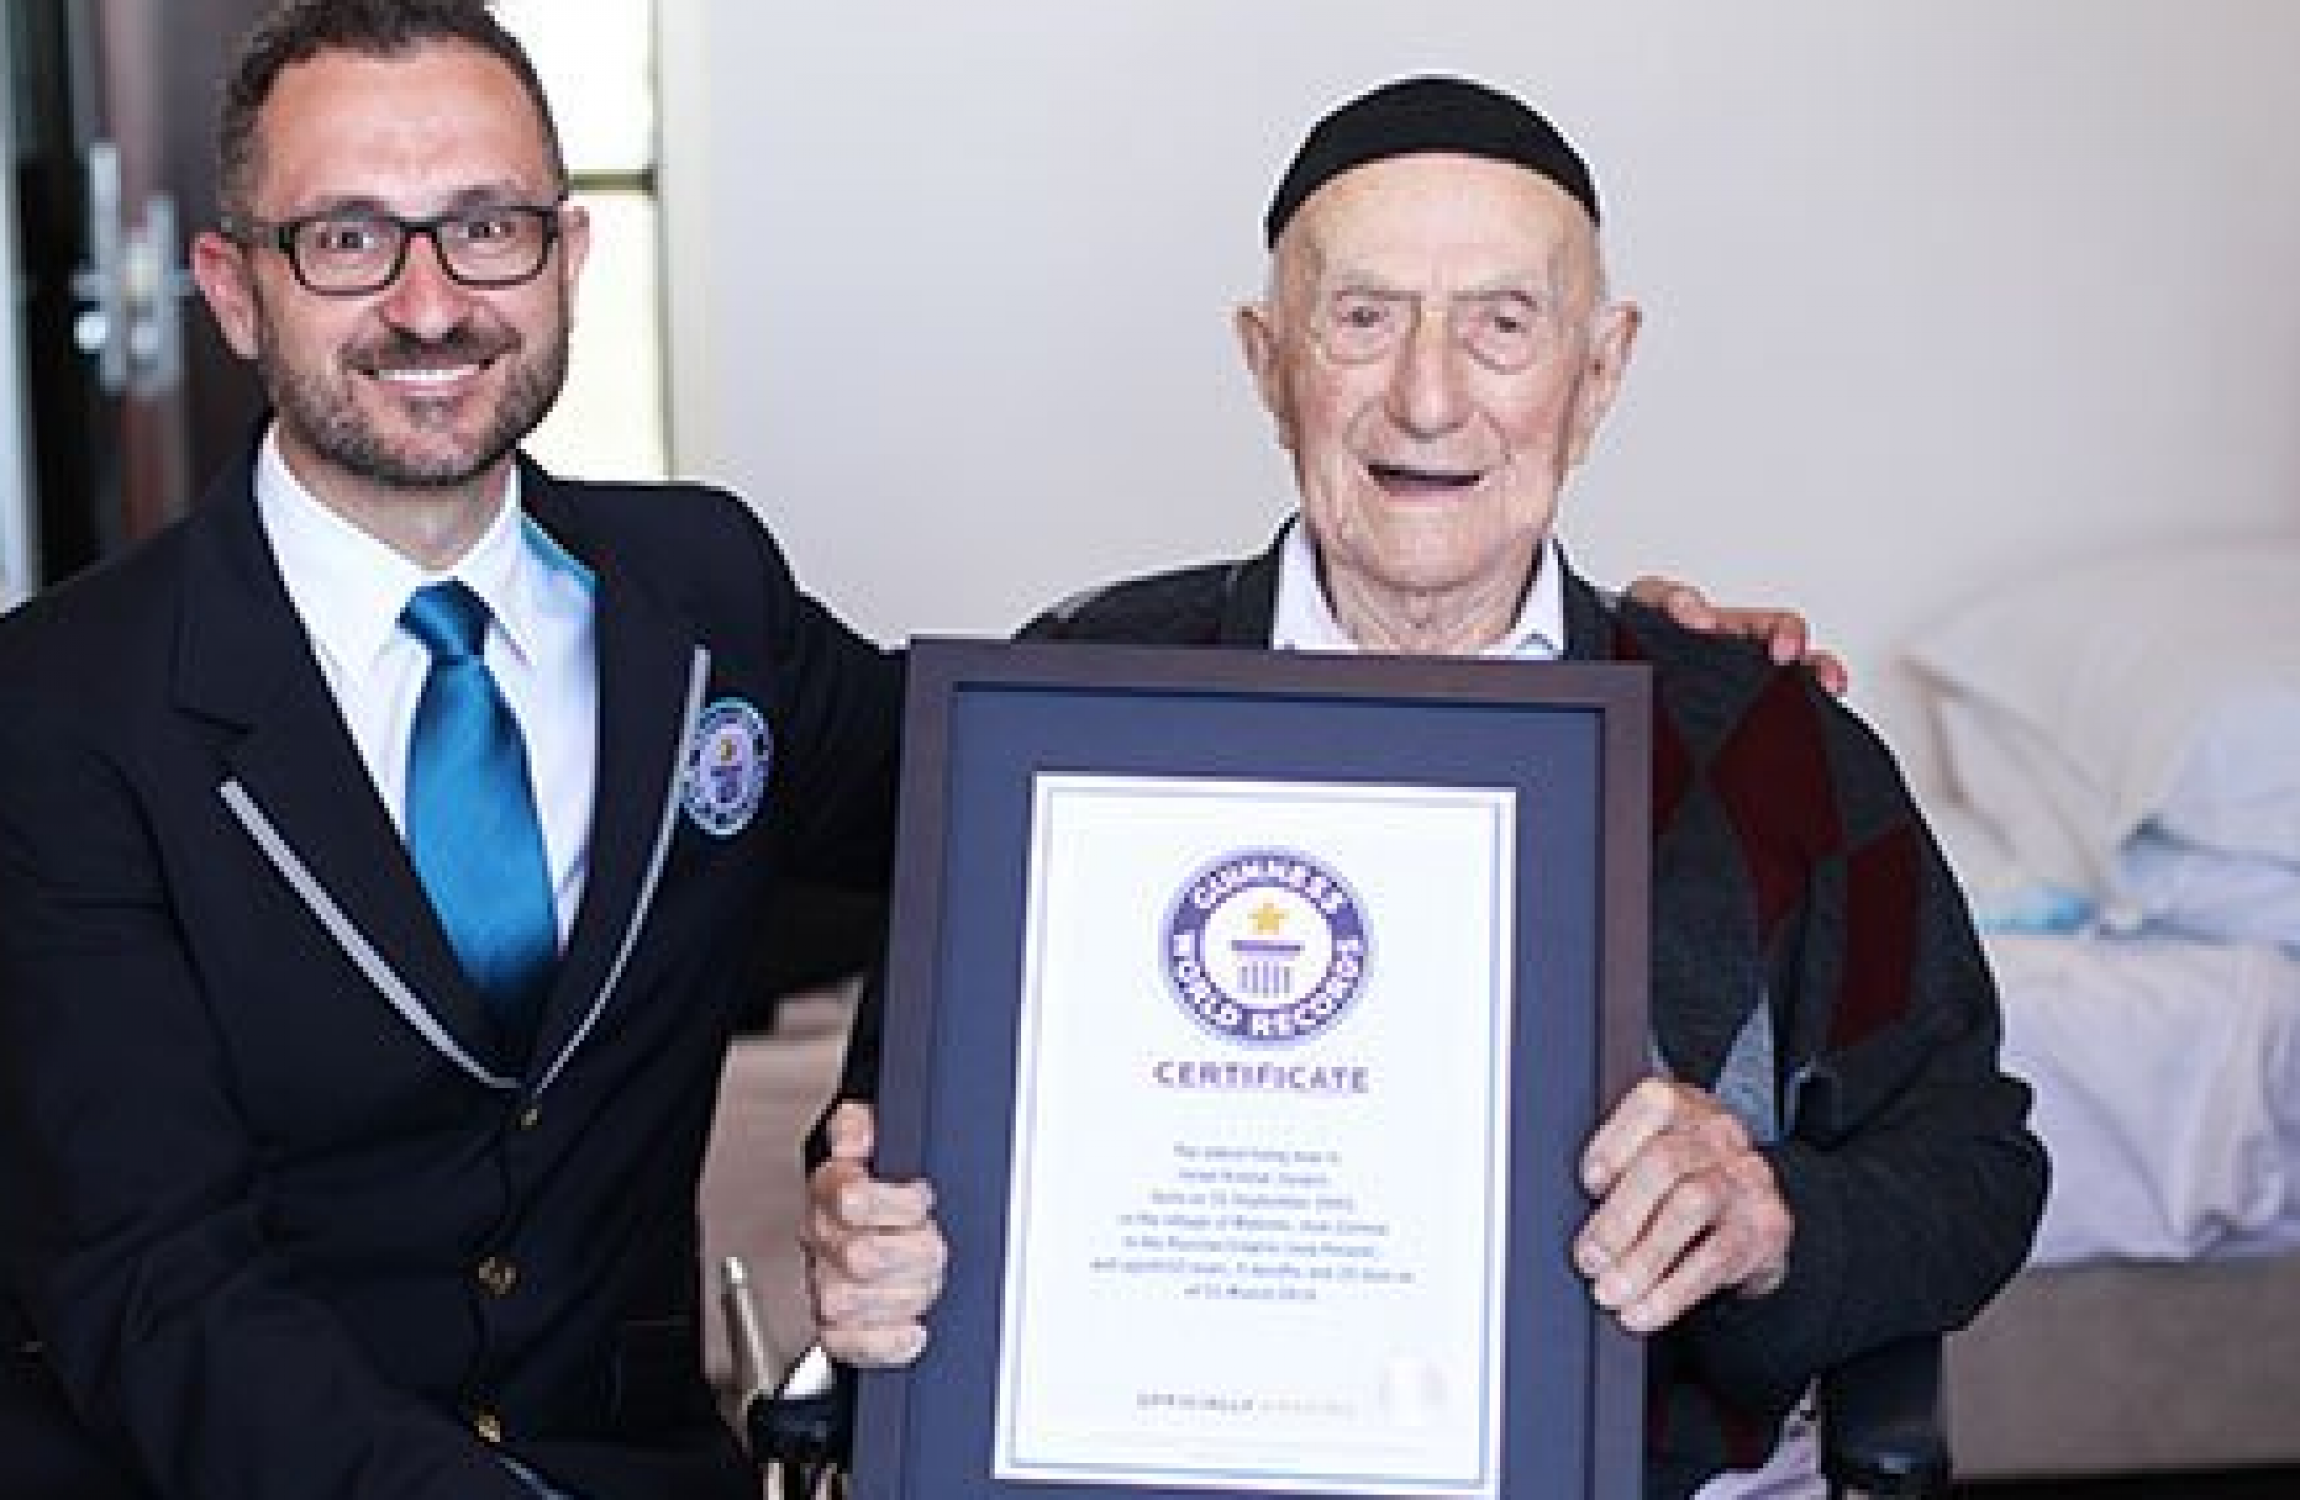 World's oldest man, Holocaust survivor, dies aged 113